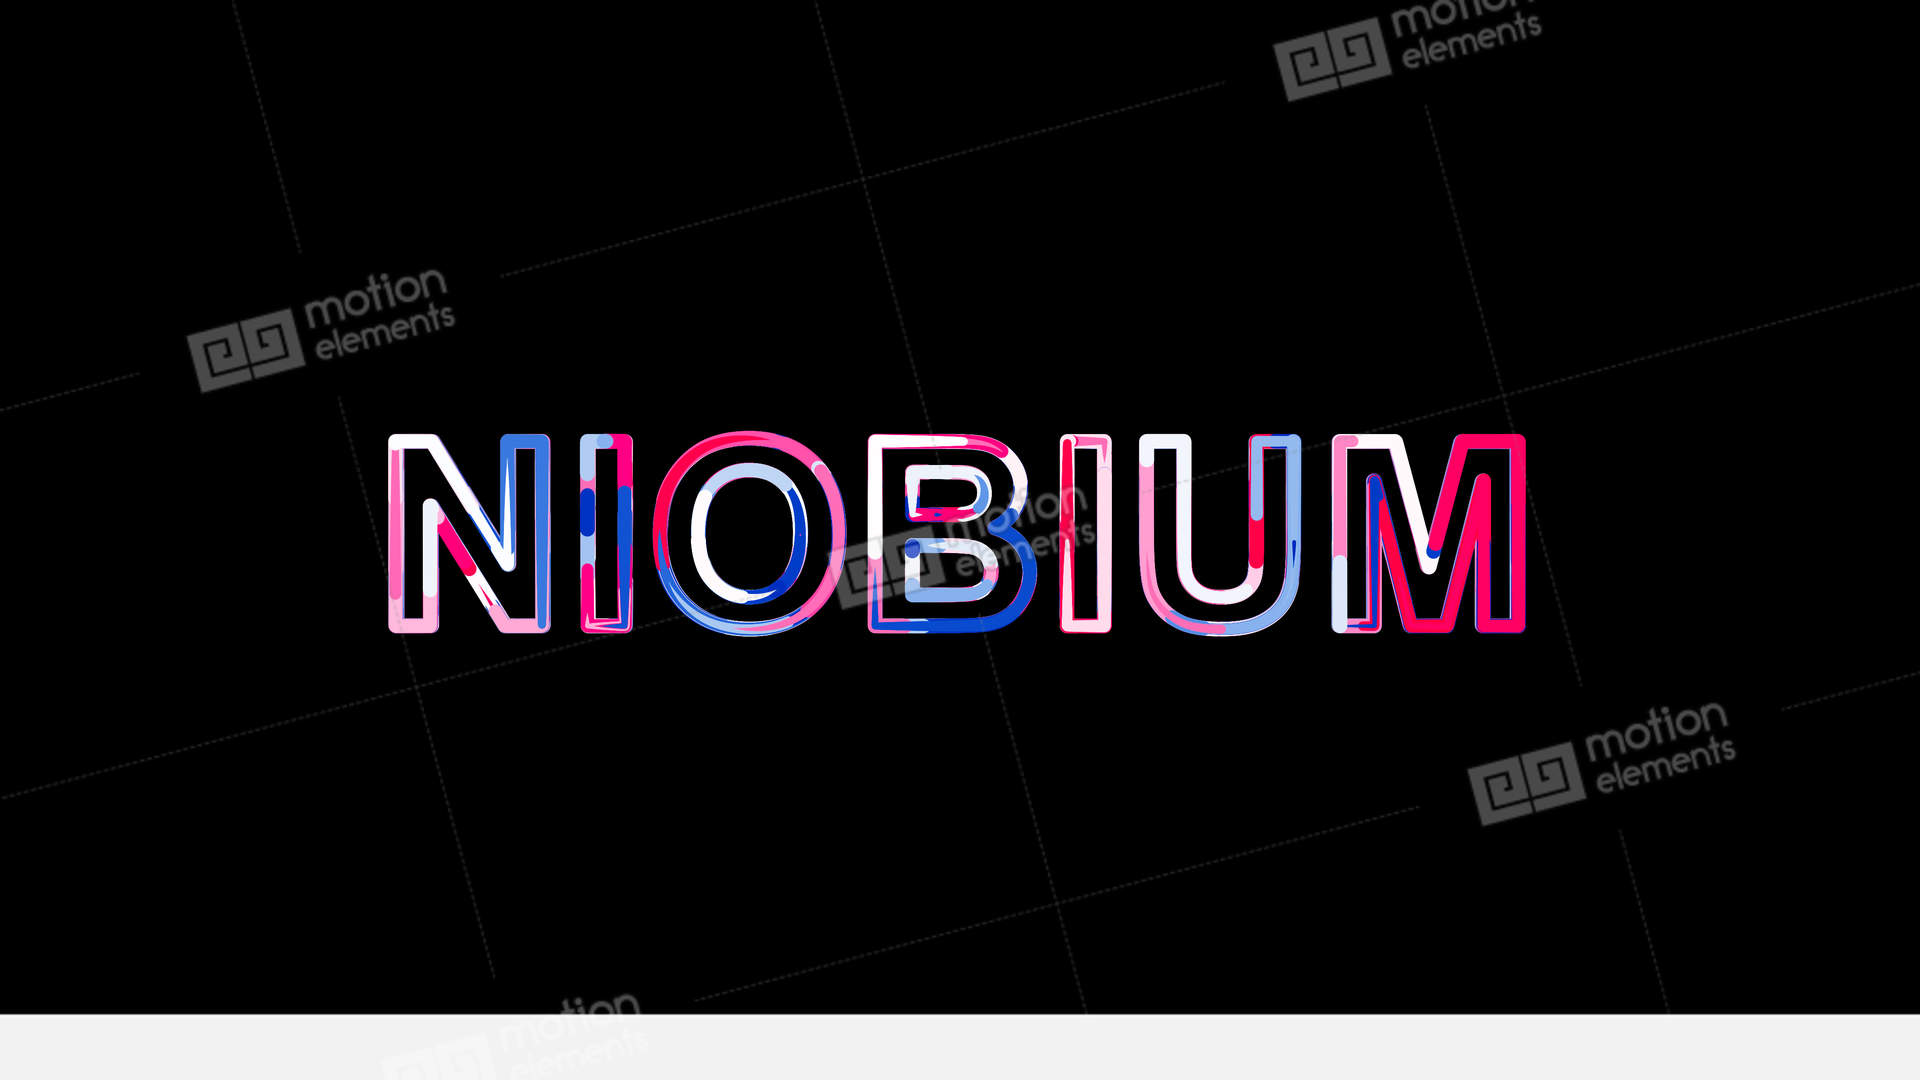 Letters Are Collected In Element Of Periodic Table Niobium Then